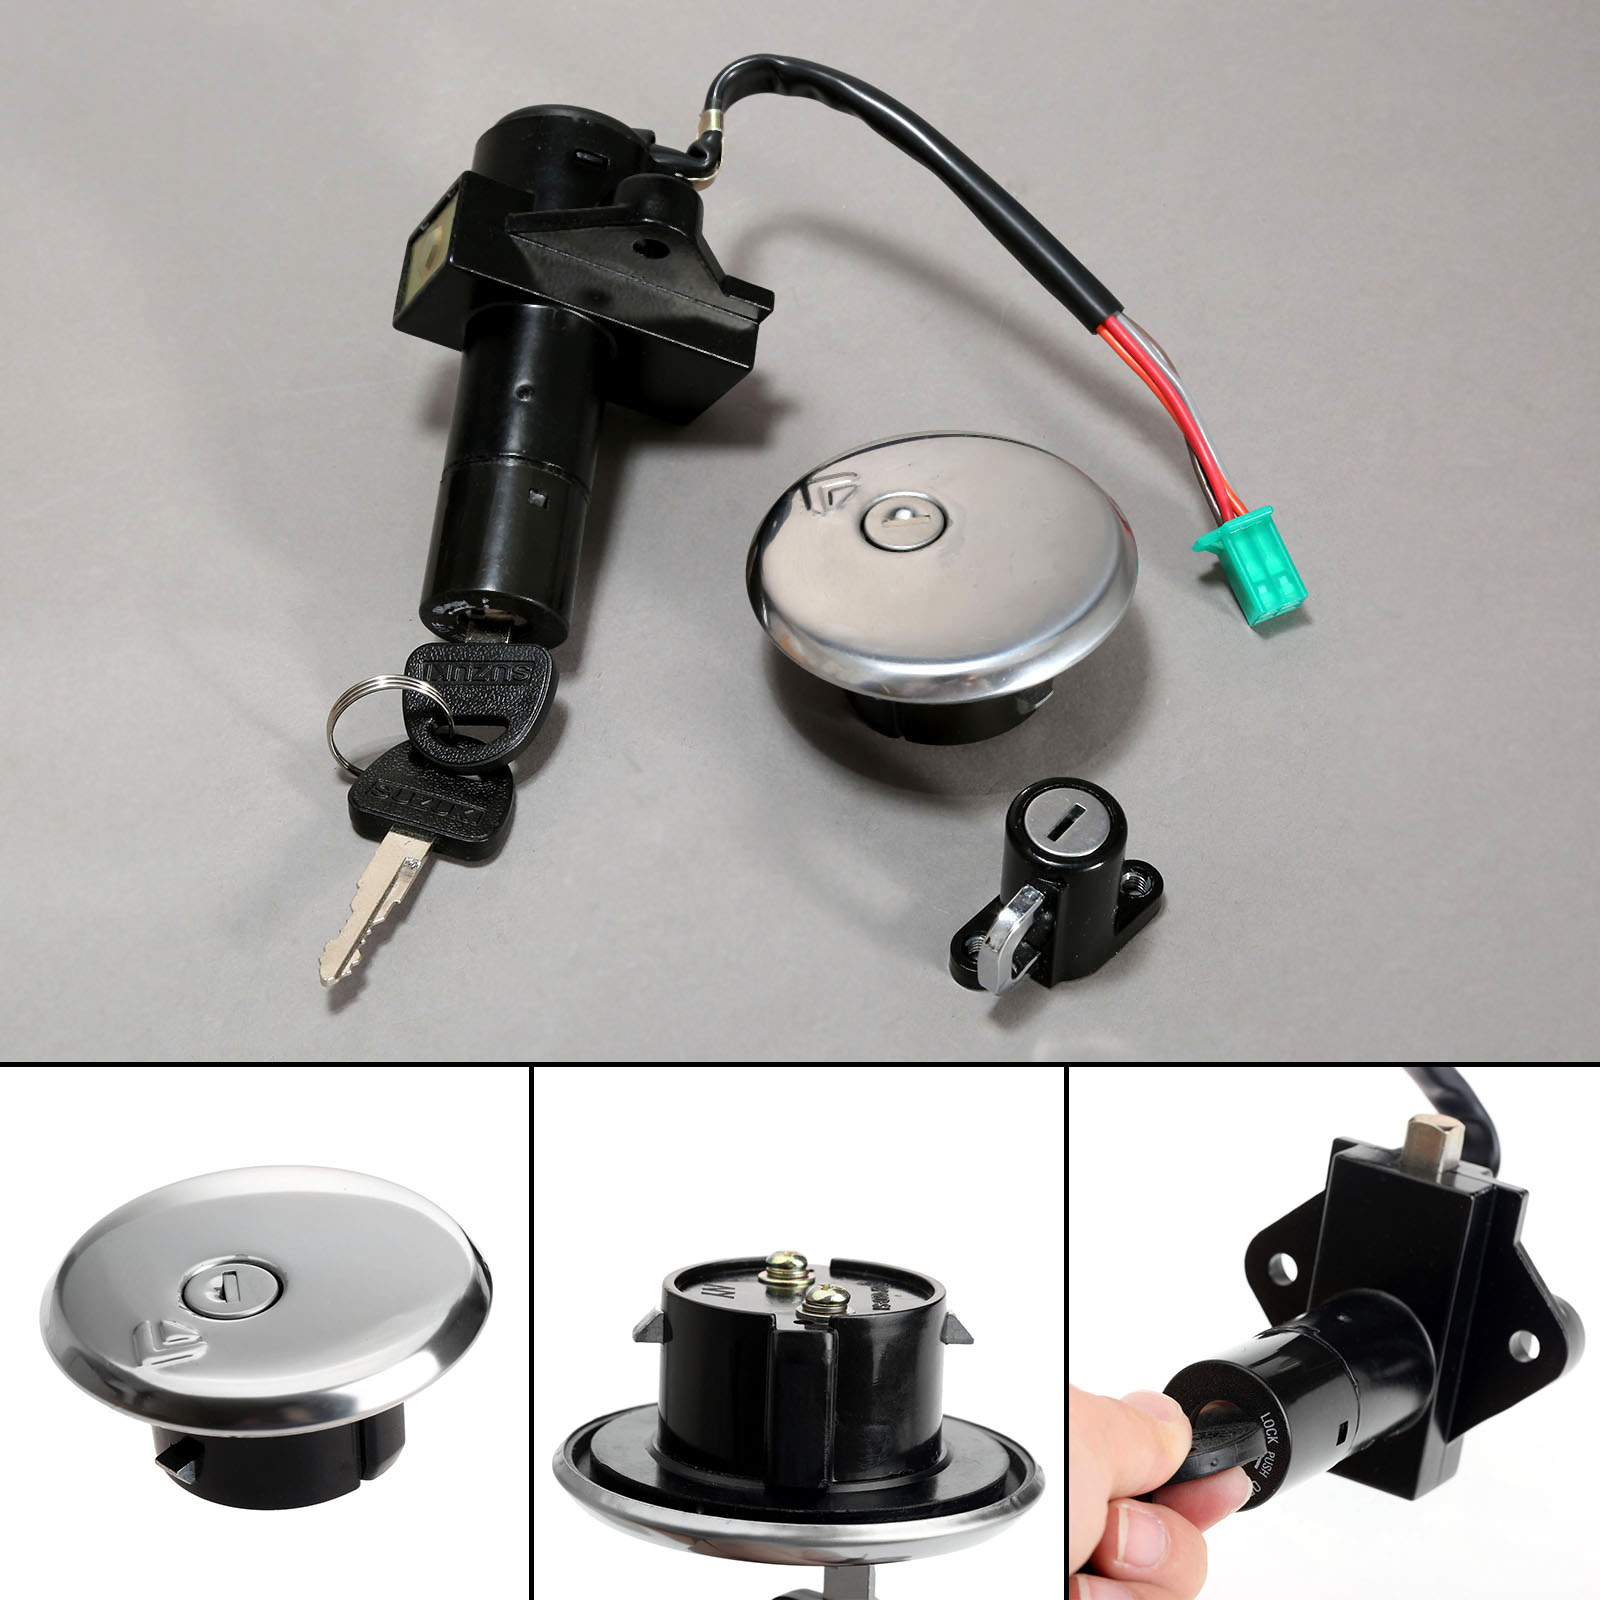 Motorcycle Lockset Aluminum Ignition Switch Lock Fuel Gas Cap Cover  Seat Lock Keys For Suzuki GN250 1985-2001 GS750 1980